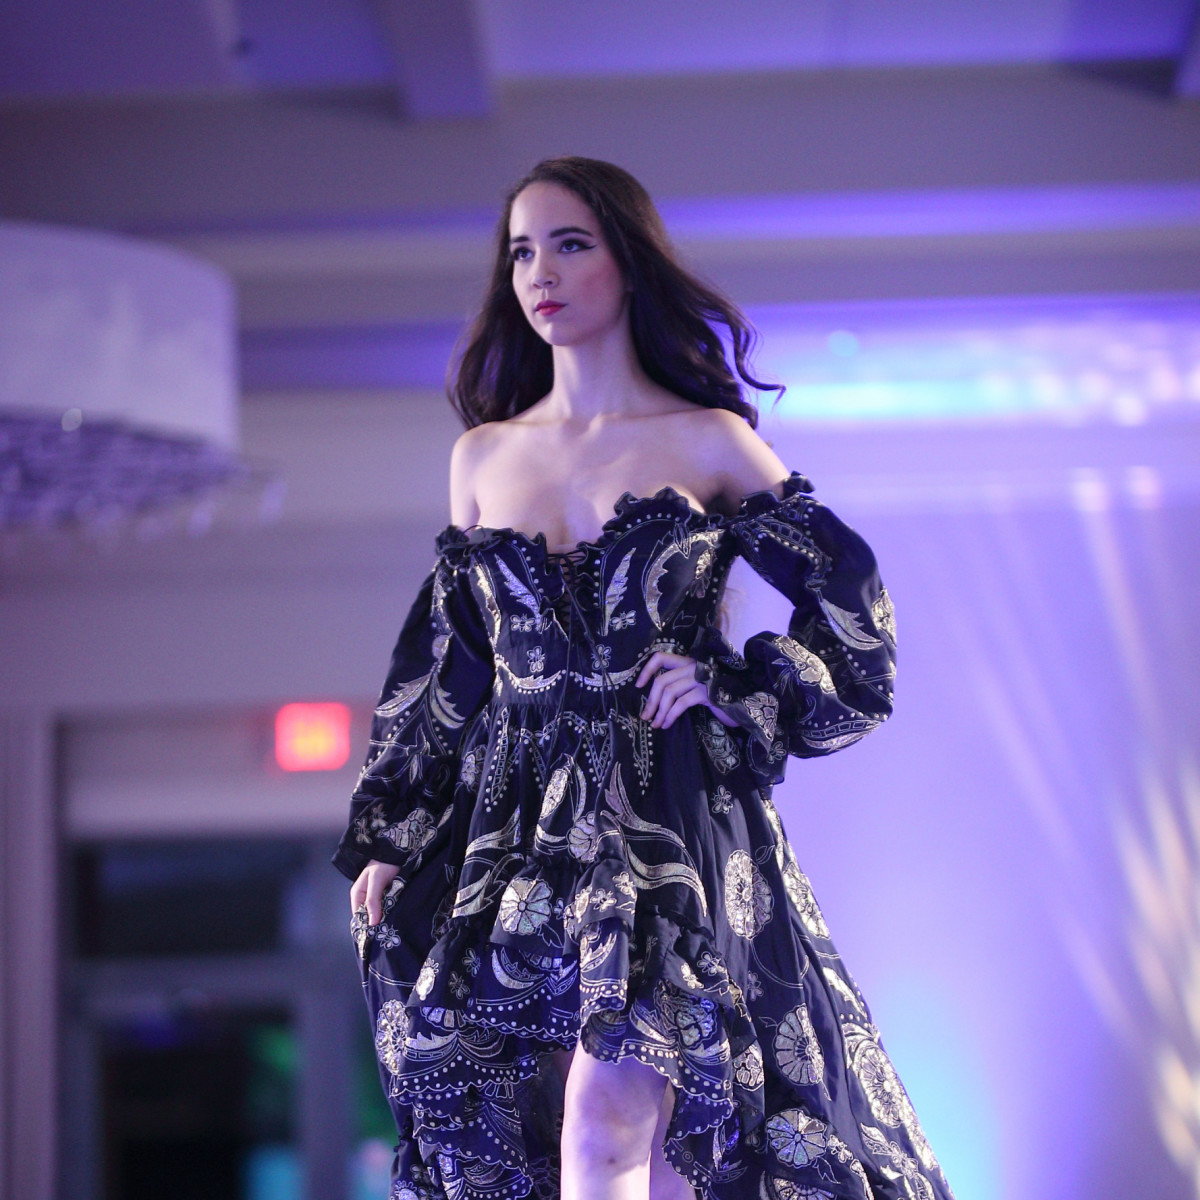 Runway model fashion show by The Webster